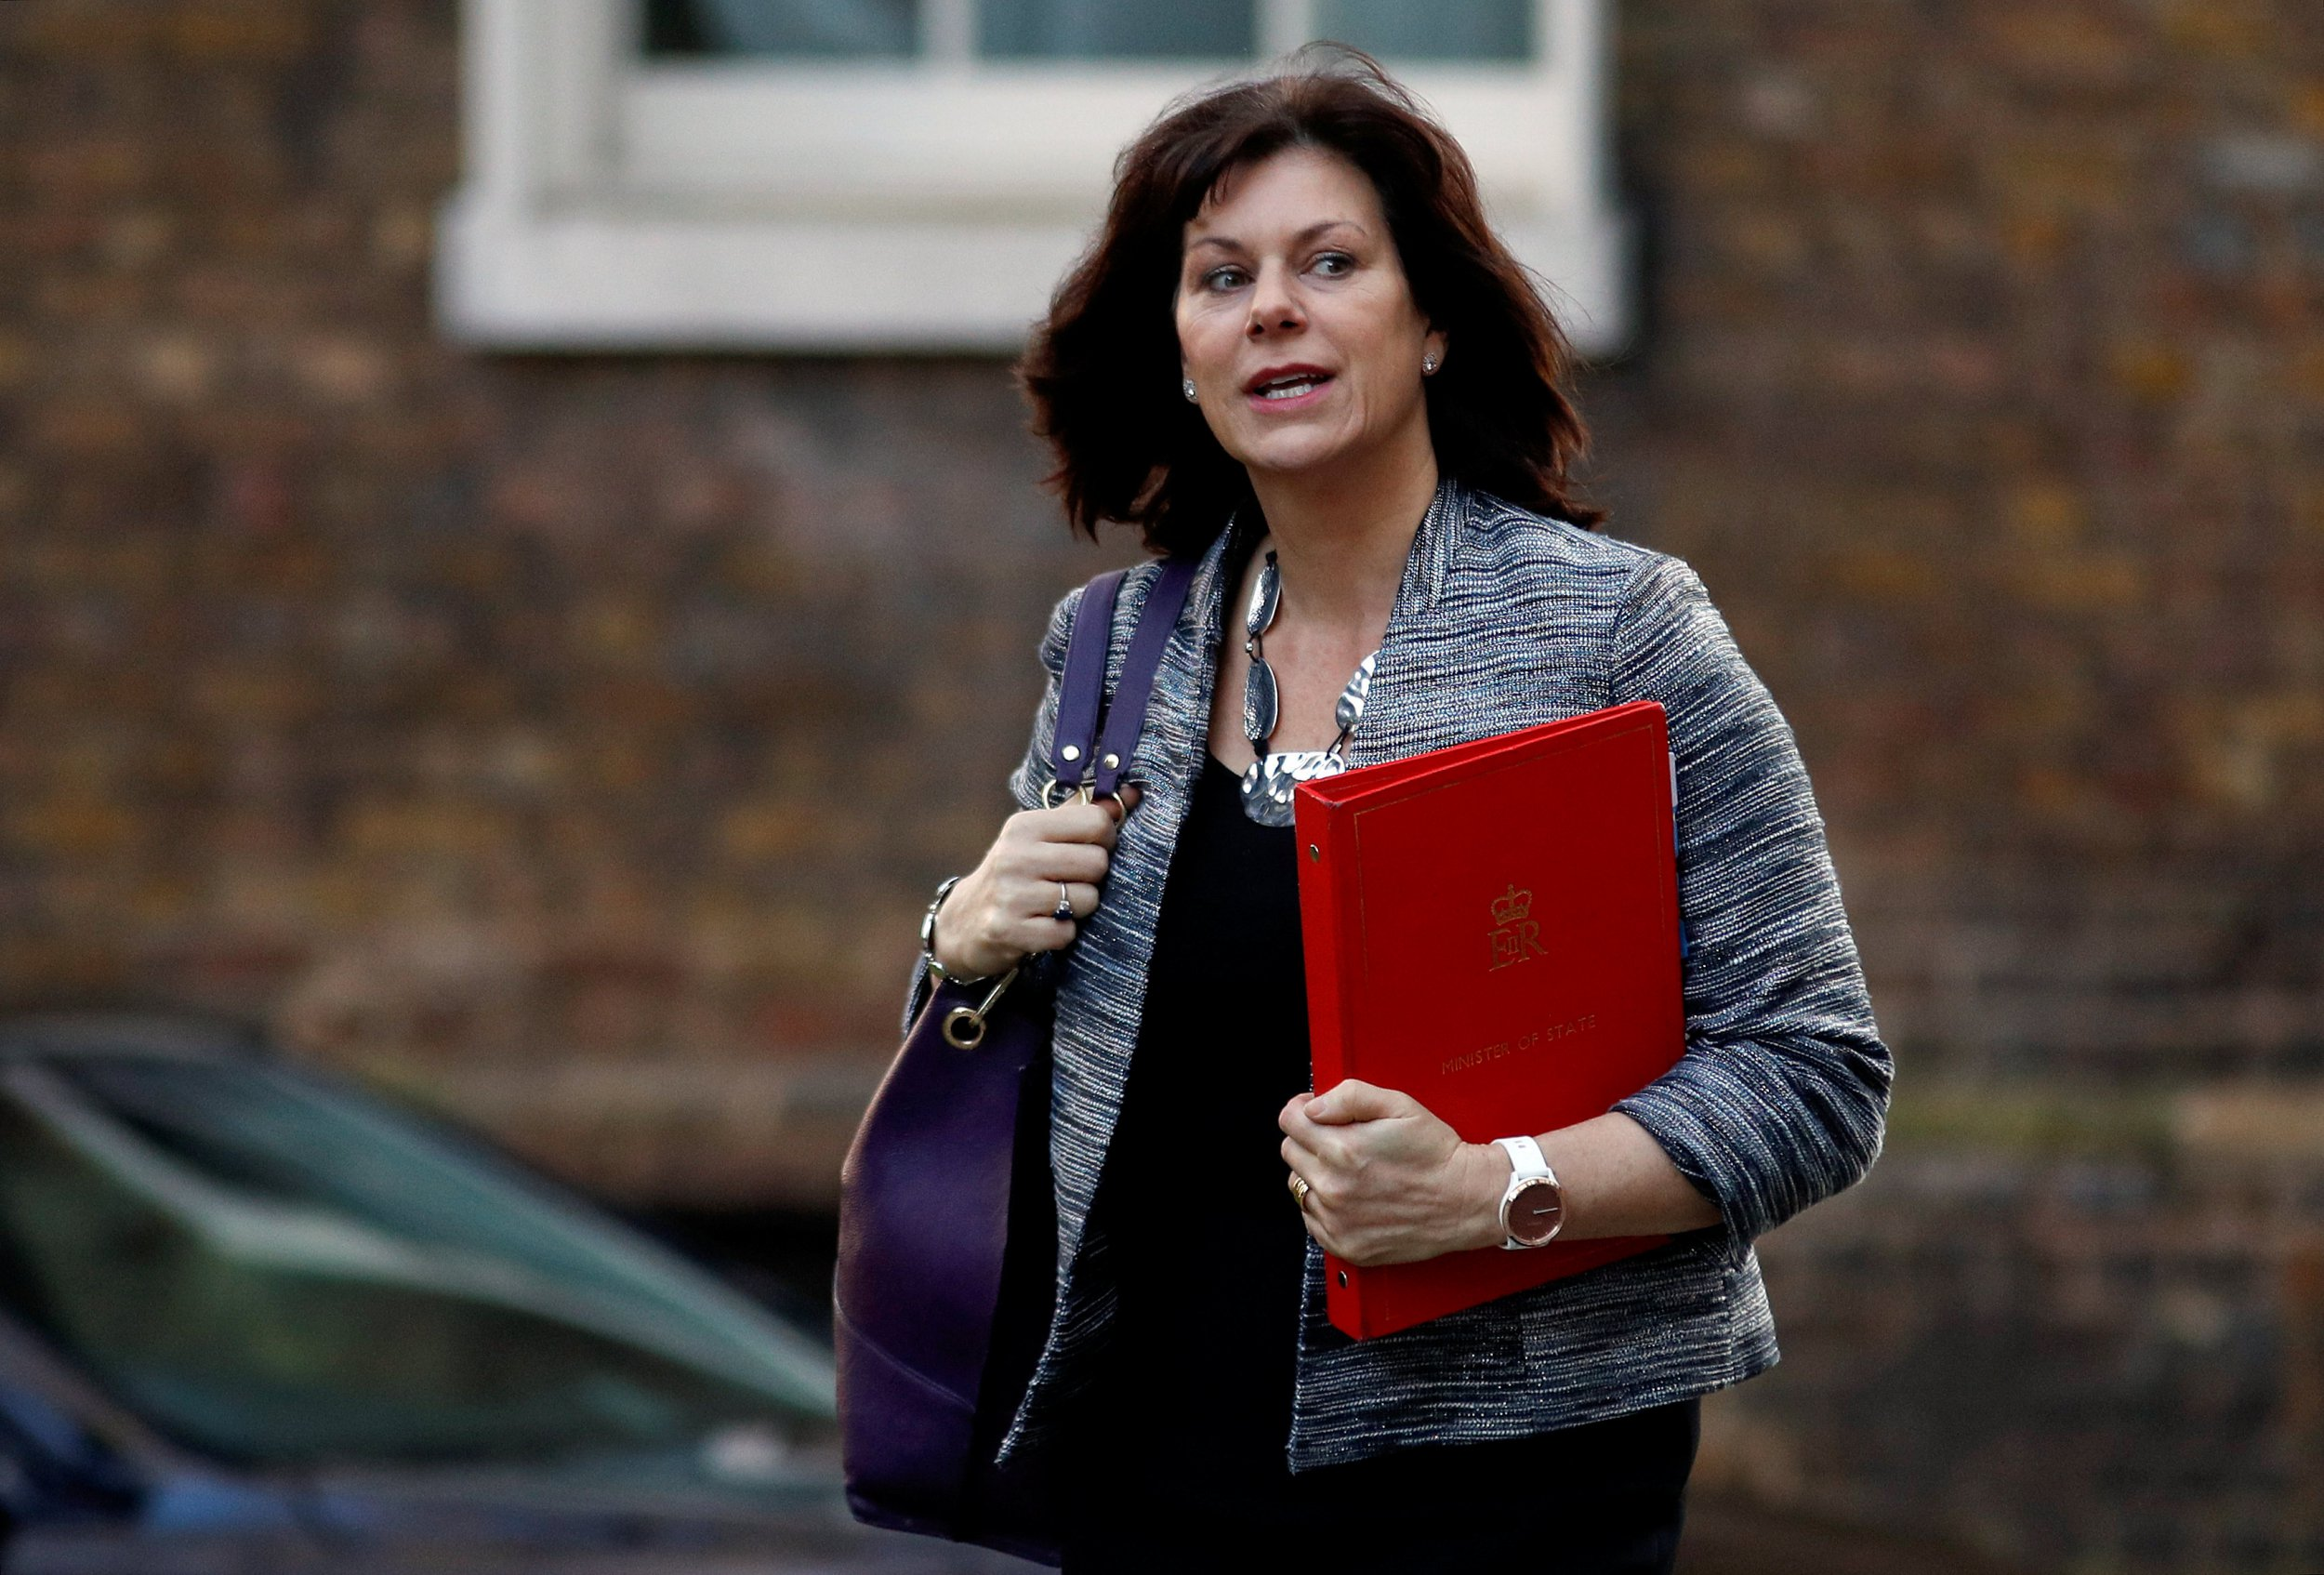 Britain's Minister of State for Energy and Clean Growth Claire Perry is seen outside of Downing Street in London, Britain, February 19, 2019. REUTERS/Peter Nicholls